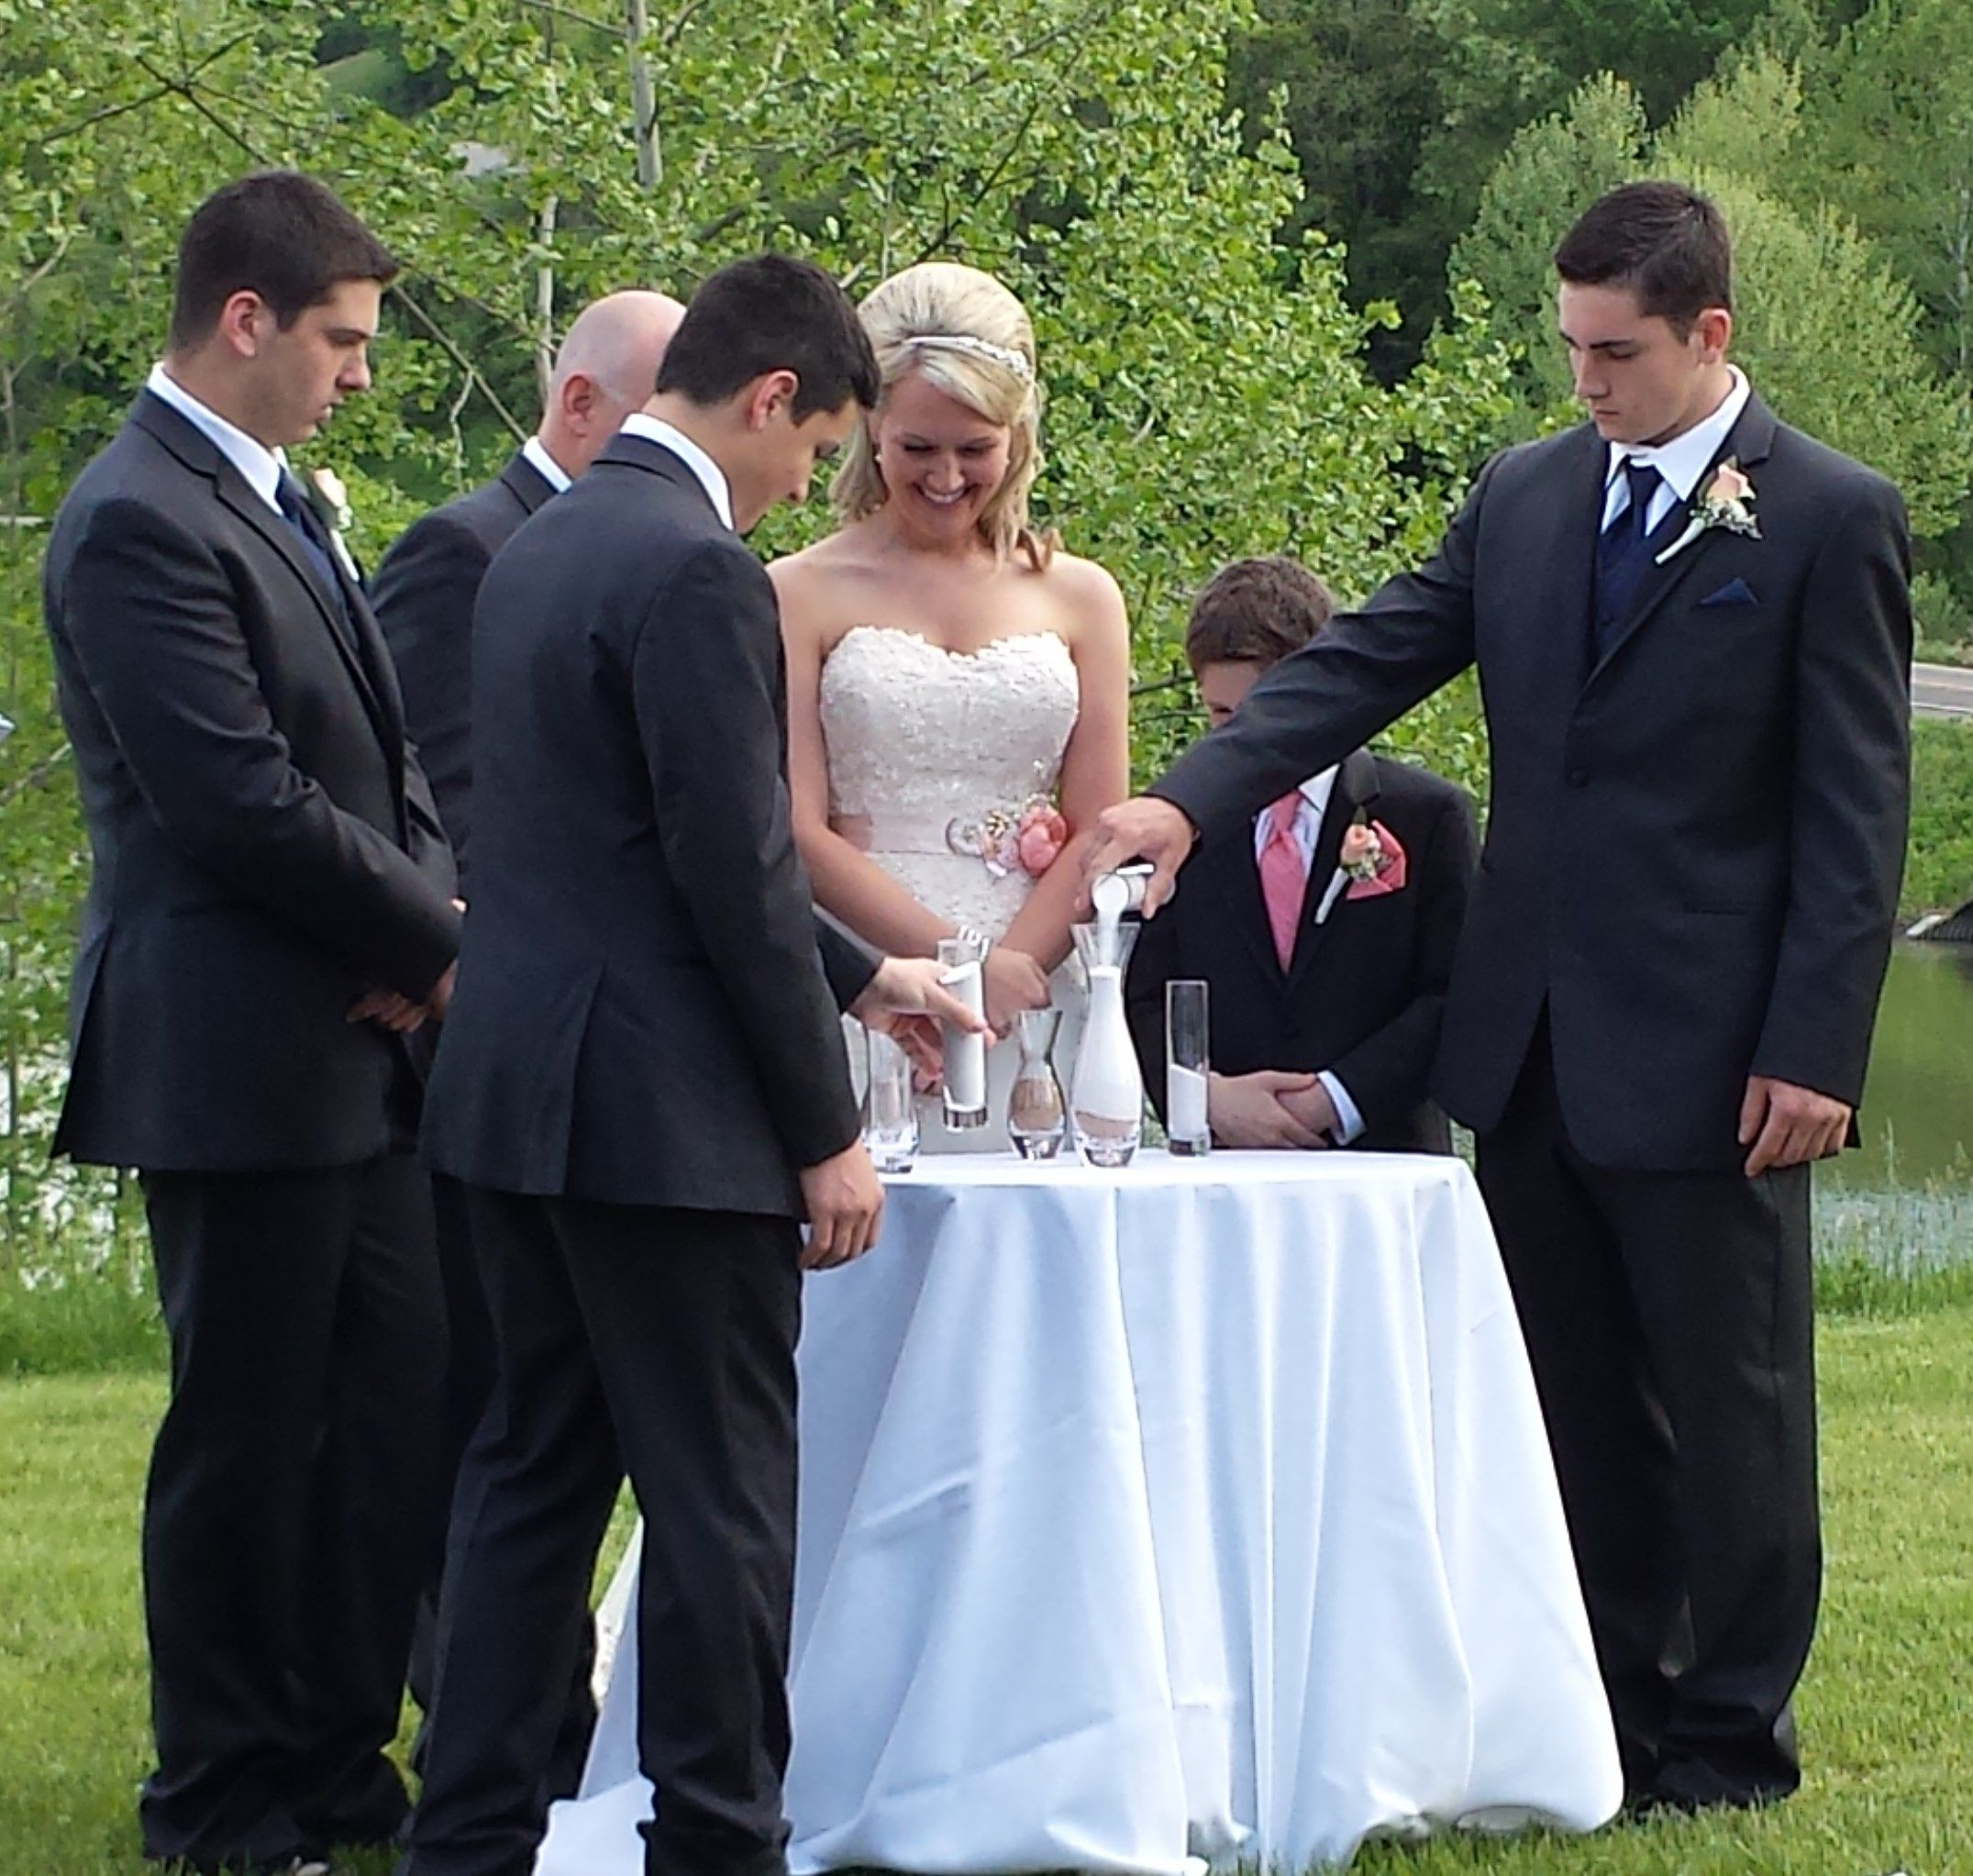 Bride And Groom Only Wedding Ideas: Marriages Not Only Unite A Bride And Groom, They Unite